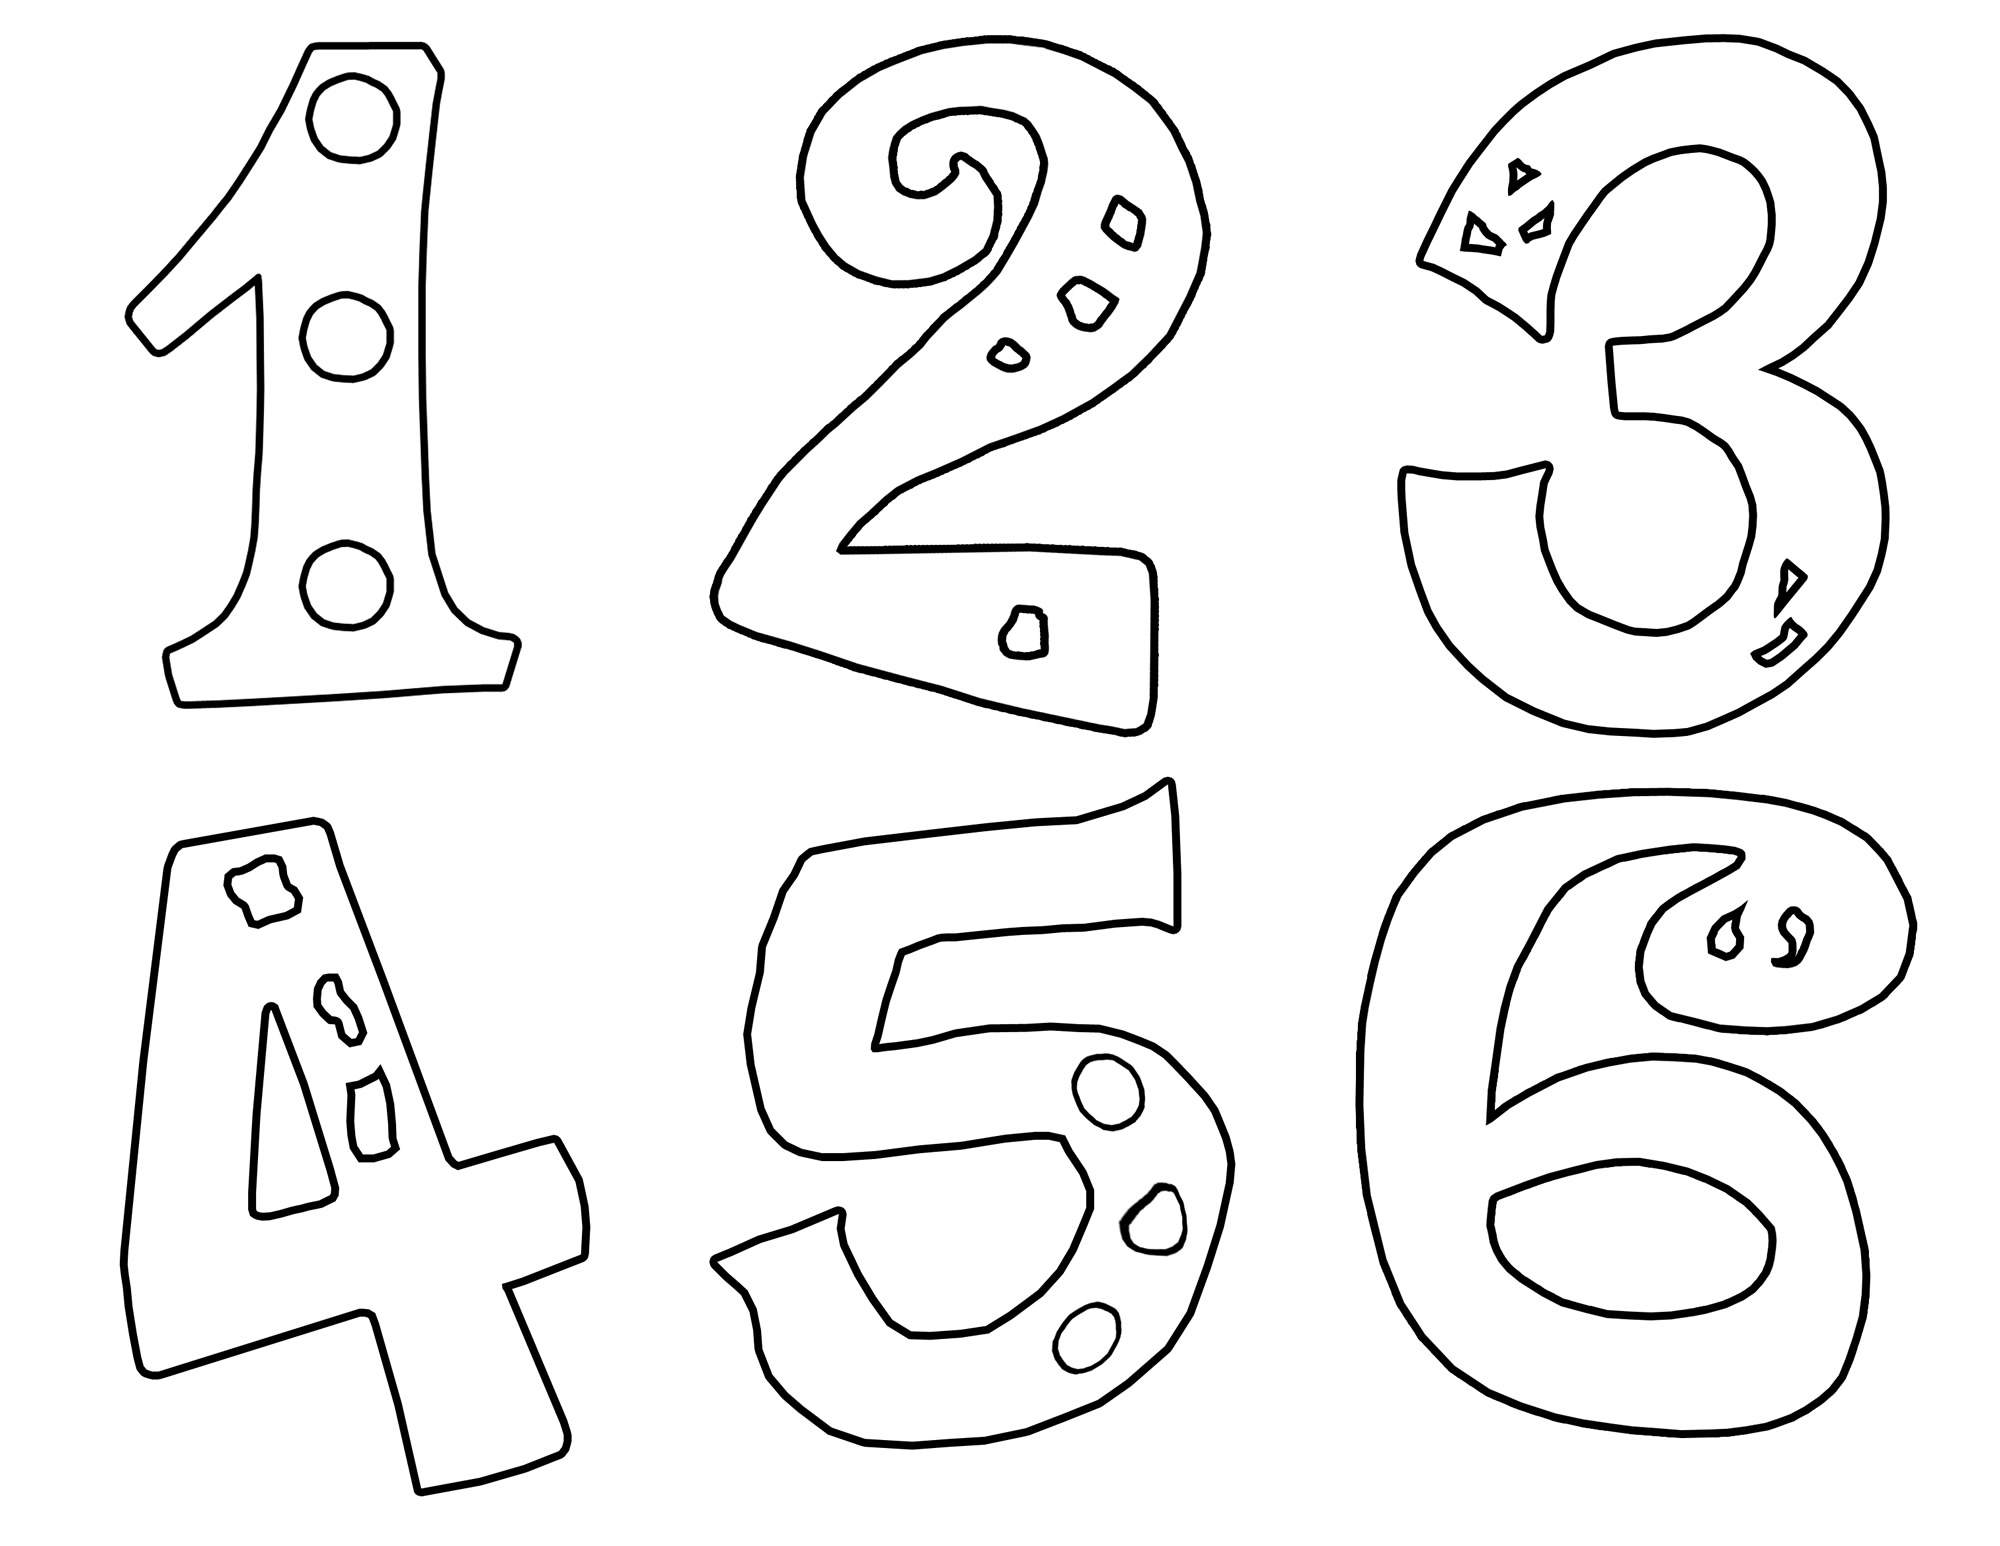 Educational Fun Kids Coloring Pages and Preschool Womanmate Download ...